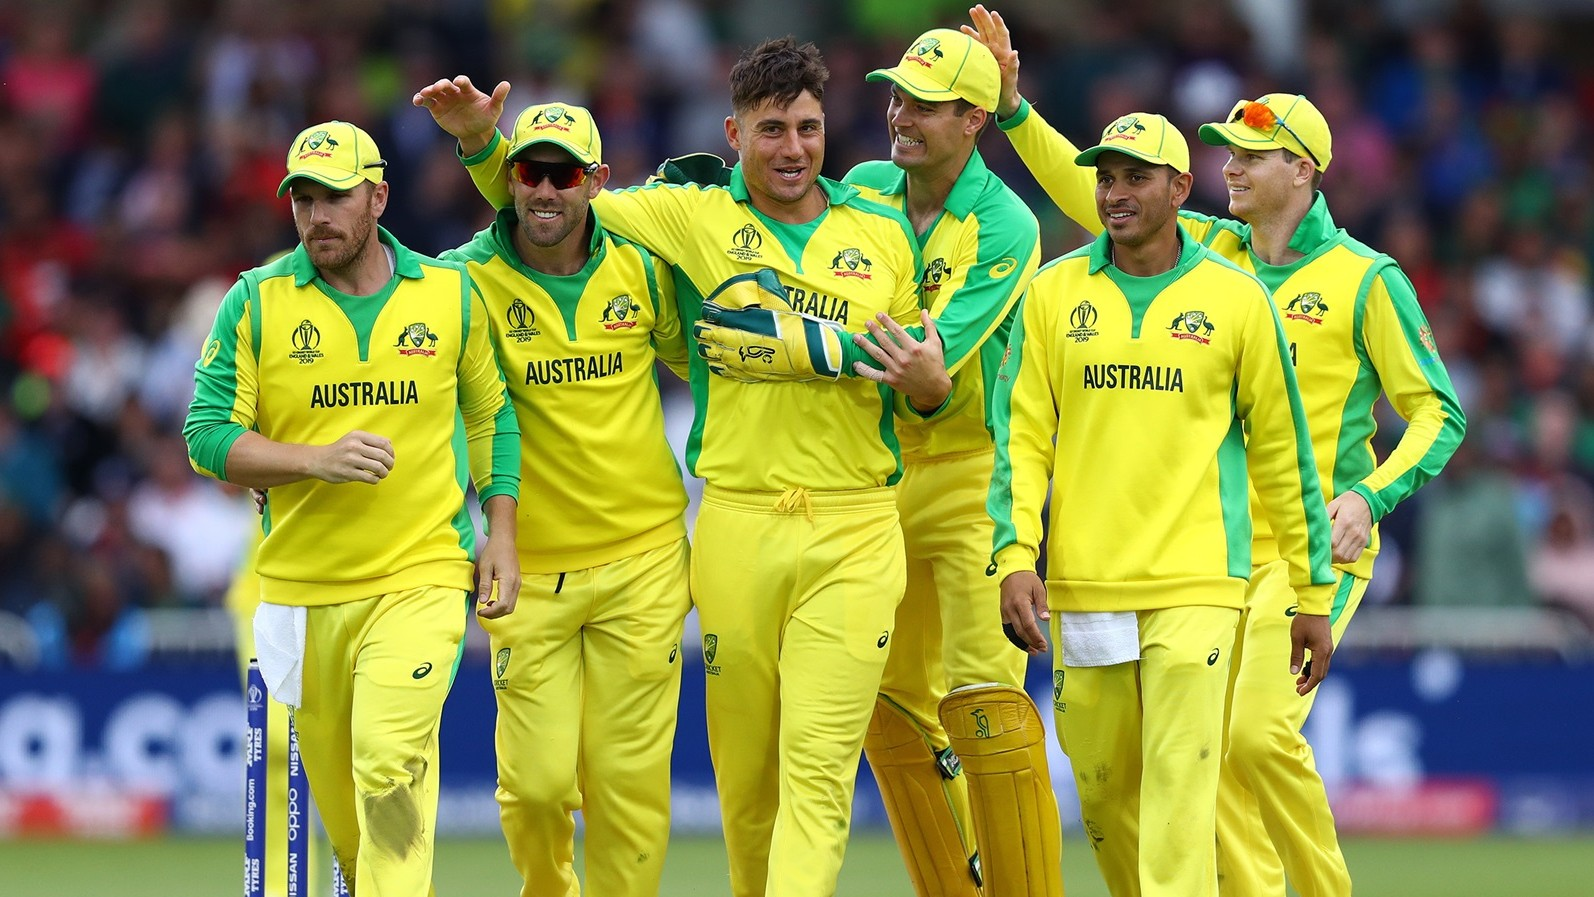 Australian team members asked to start preparing for the upcoming England tour: Report